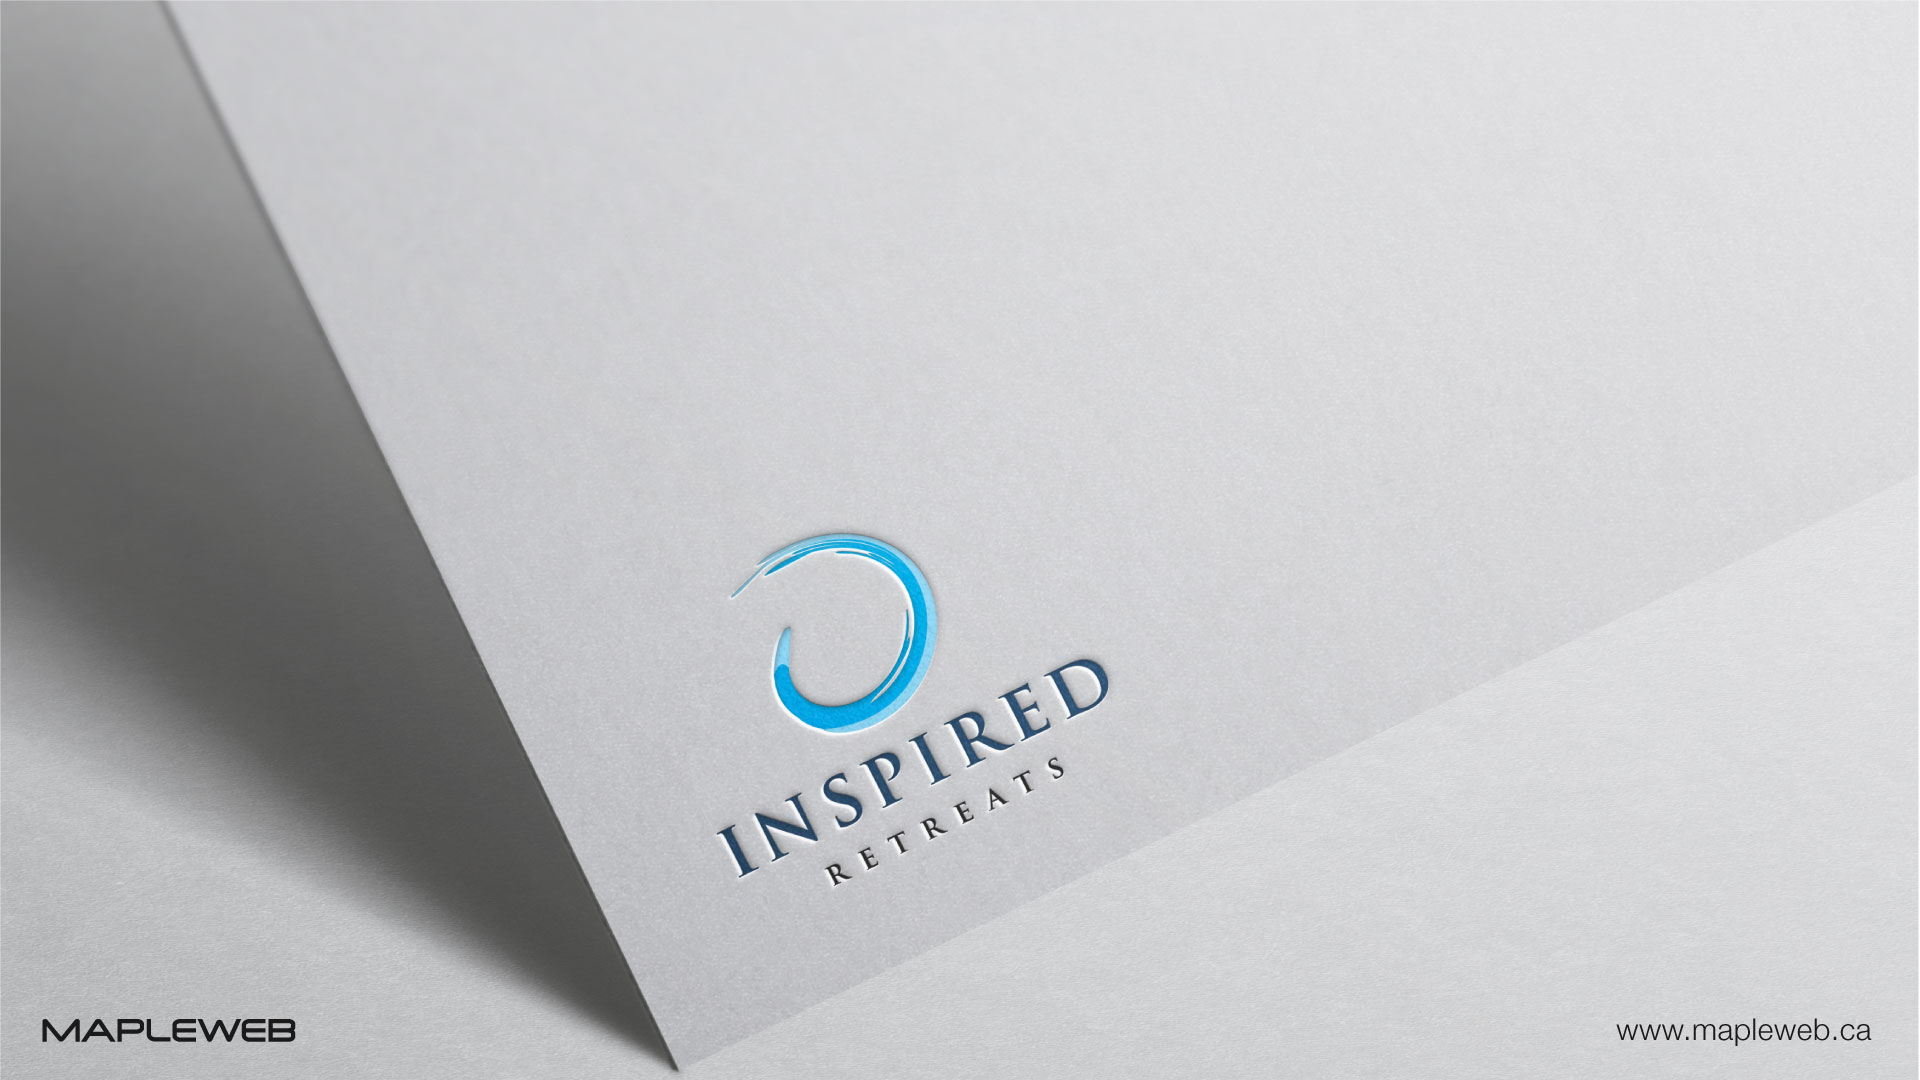 inspired-retreats-brand-logo-design-by-mapleweb-vancouver-canada-white-paper-mock